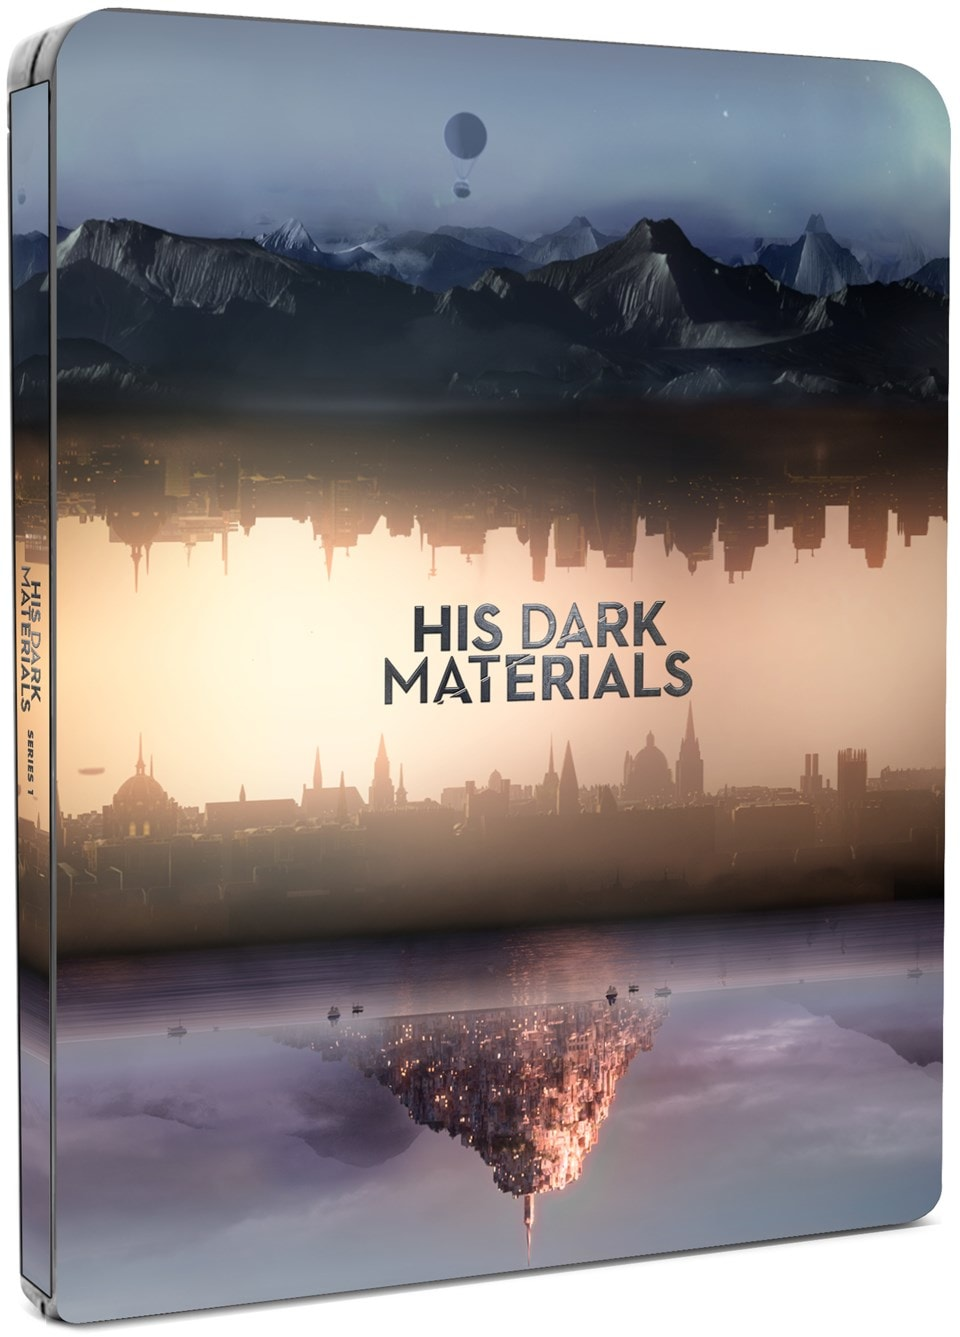 His Dark Materials: Season One (hmv exclusive) Limited Signed Art Card - 1